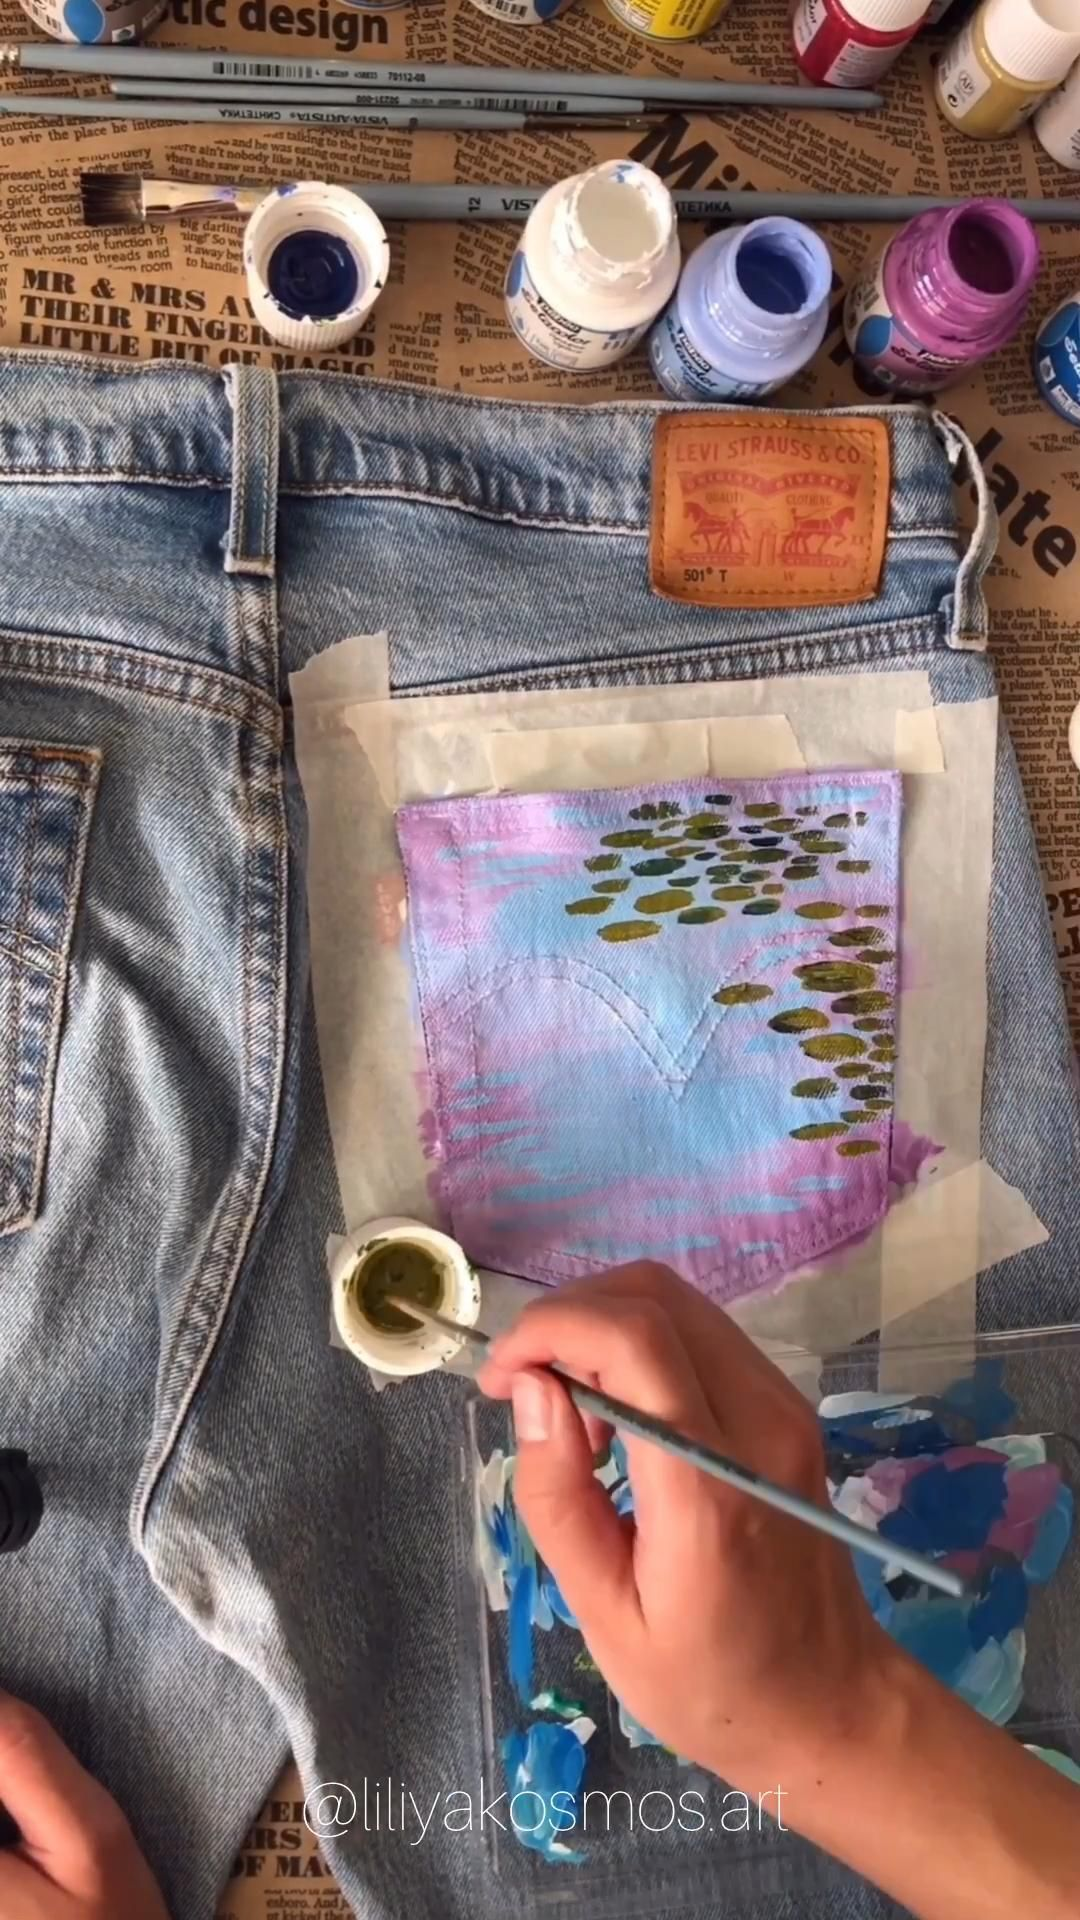 Hand painted jeans pocket Monet Waterlilies jean price Not | Etsy – Design/Clothing